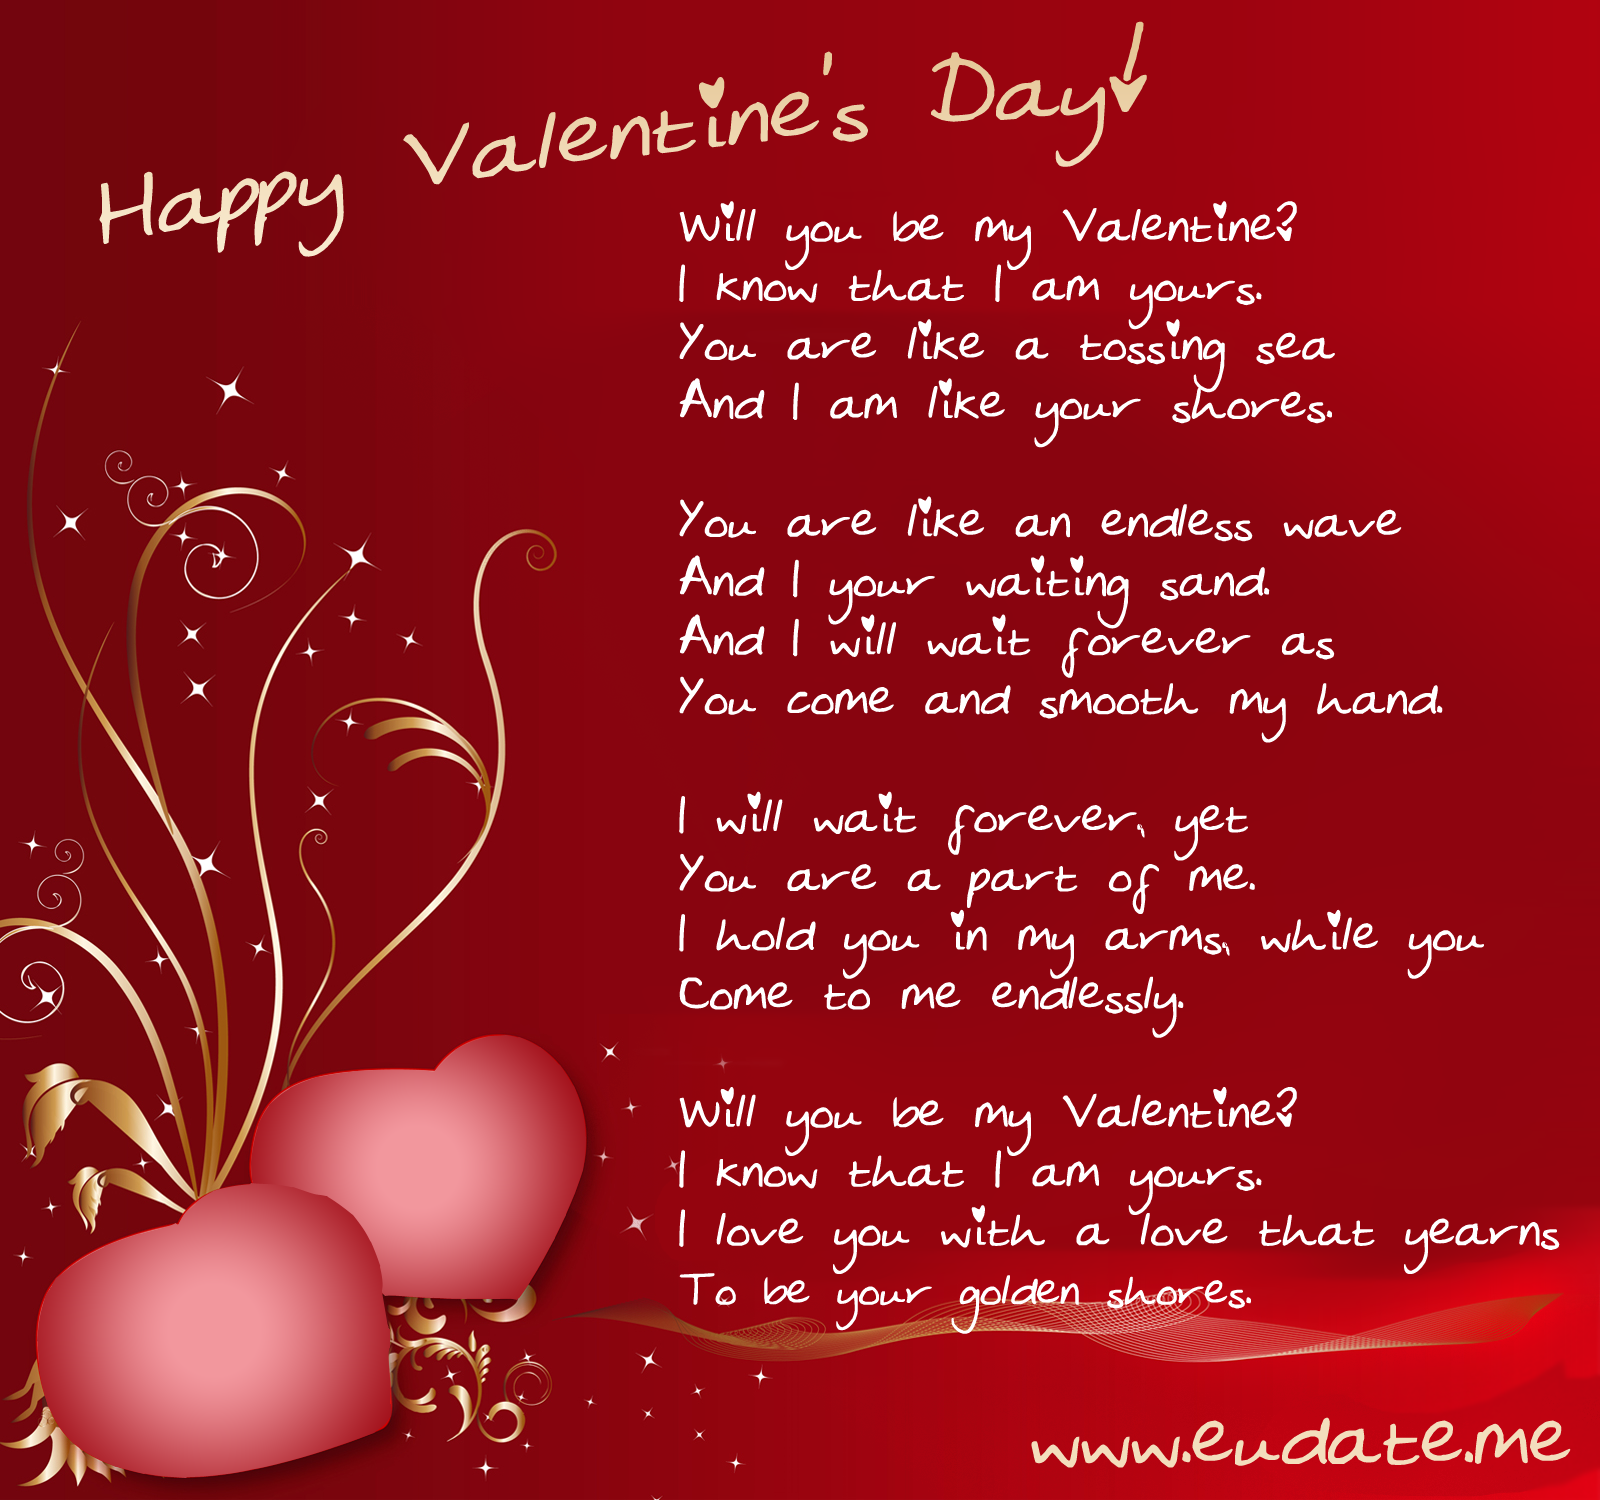 Will you be my Valentine I know that I am yours Happy Valentine – Best Quotes for Valentines Cards